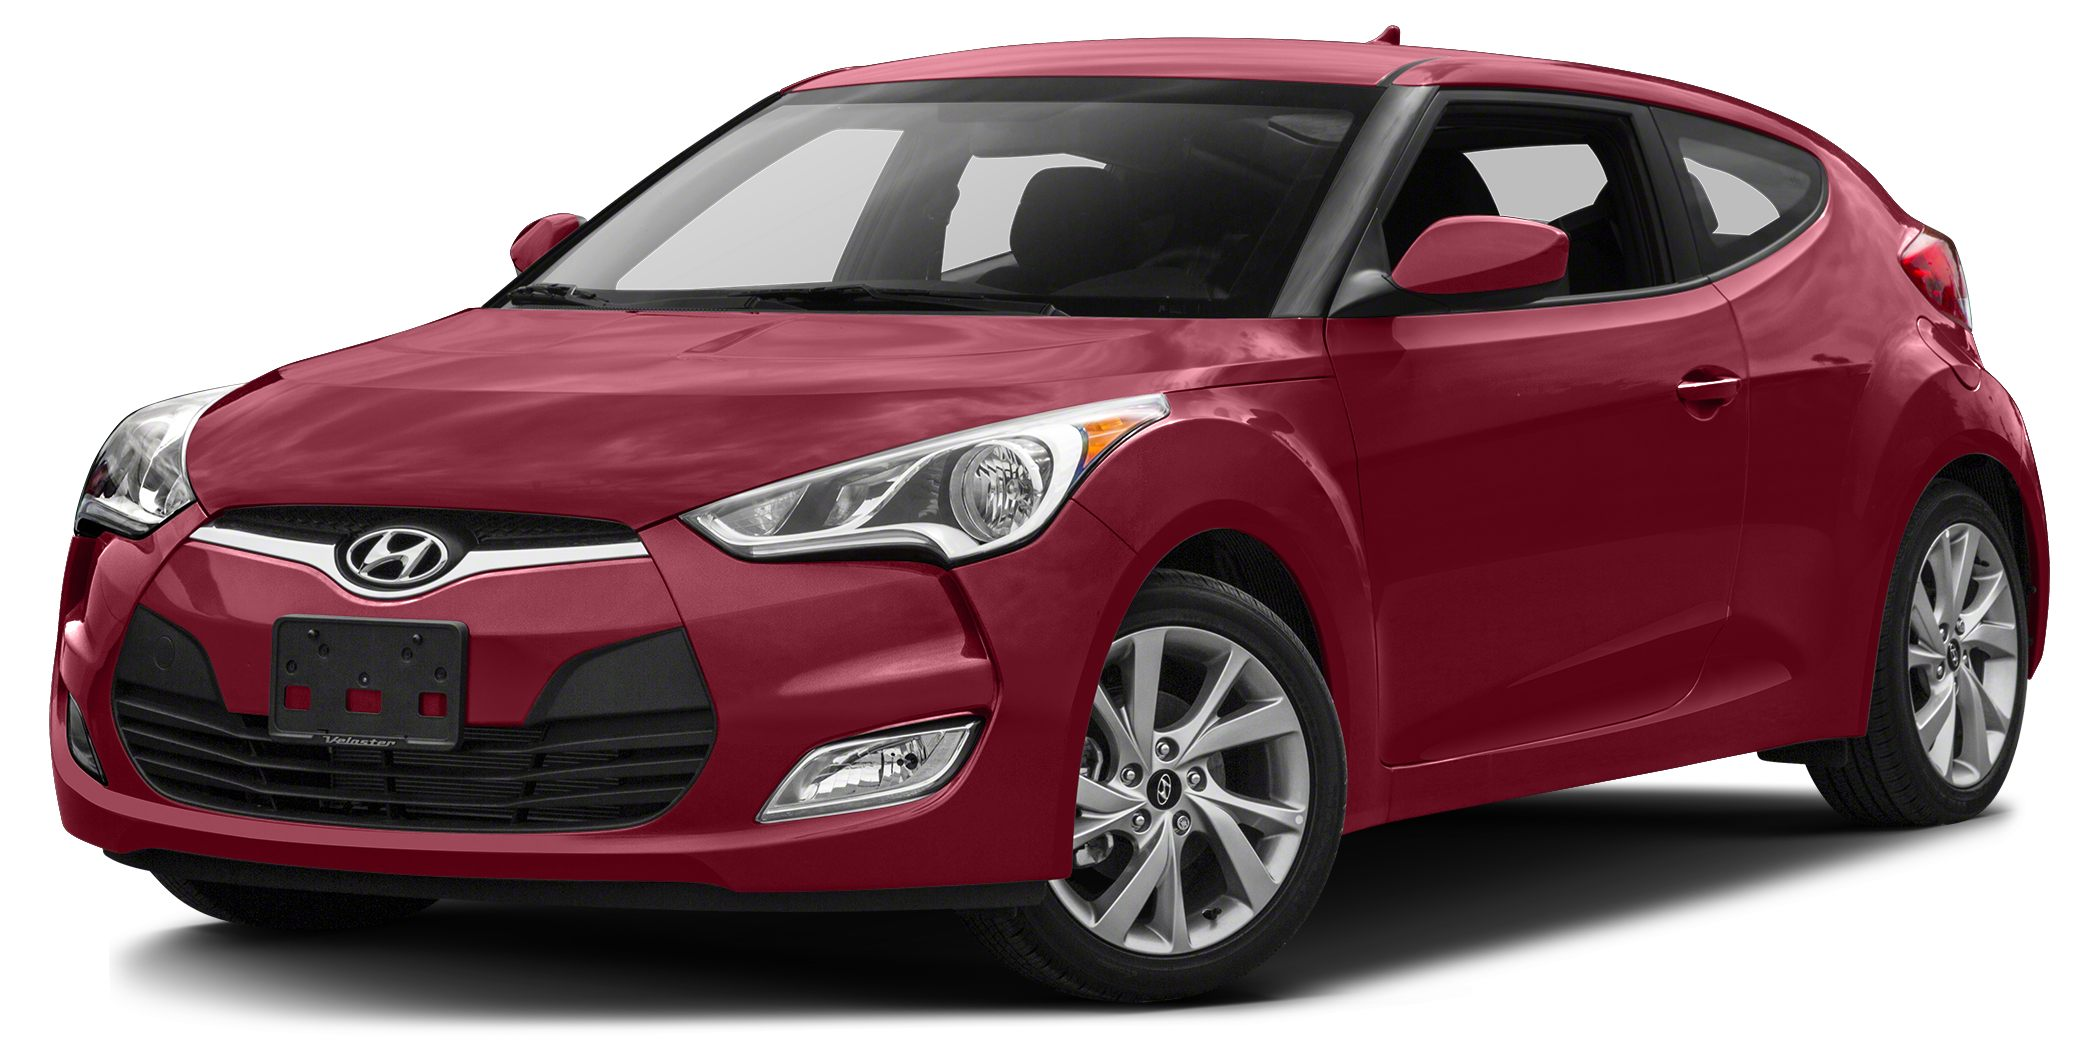 2016 Hyundai Veloster Base CARFAX One-Owner Clean CARFAX Red 2016 Hyundai Veloster FWD 6-Speed E